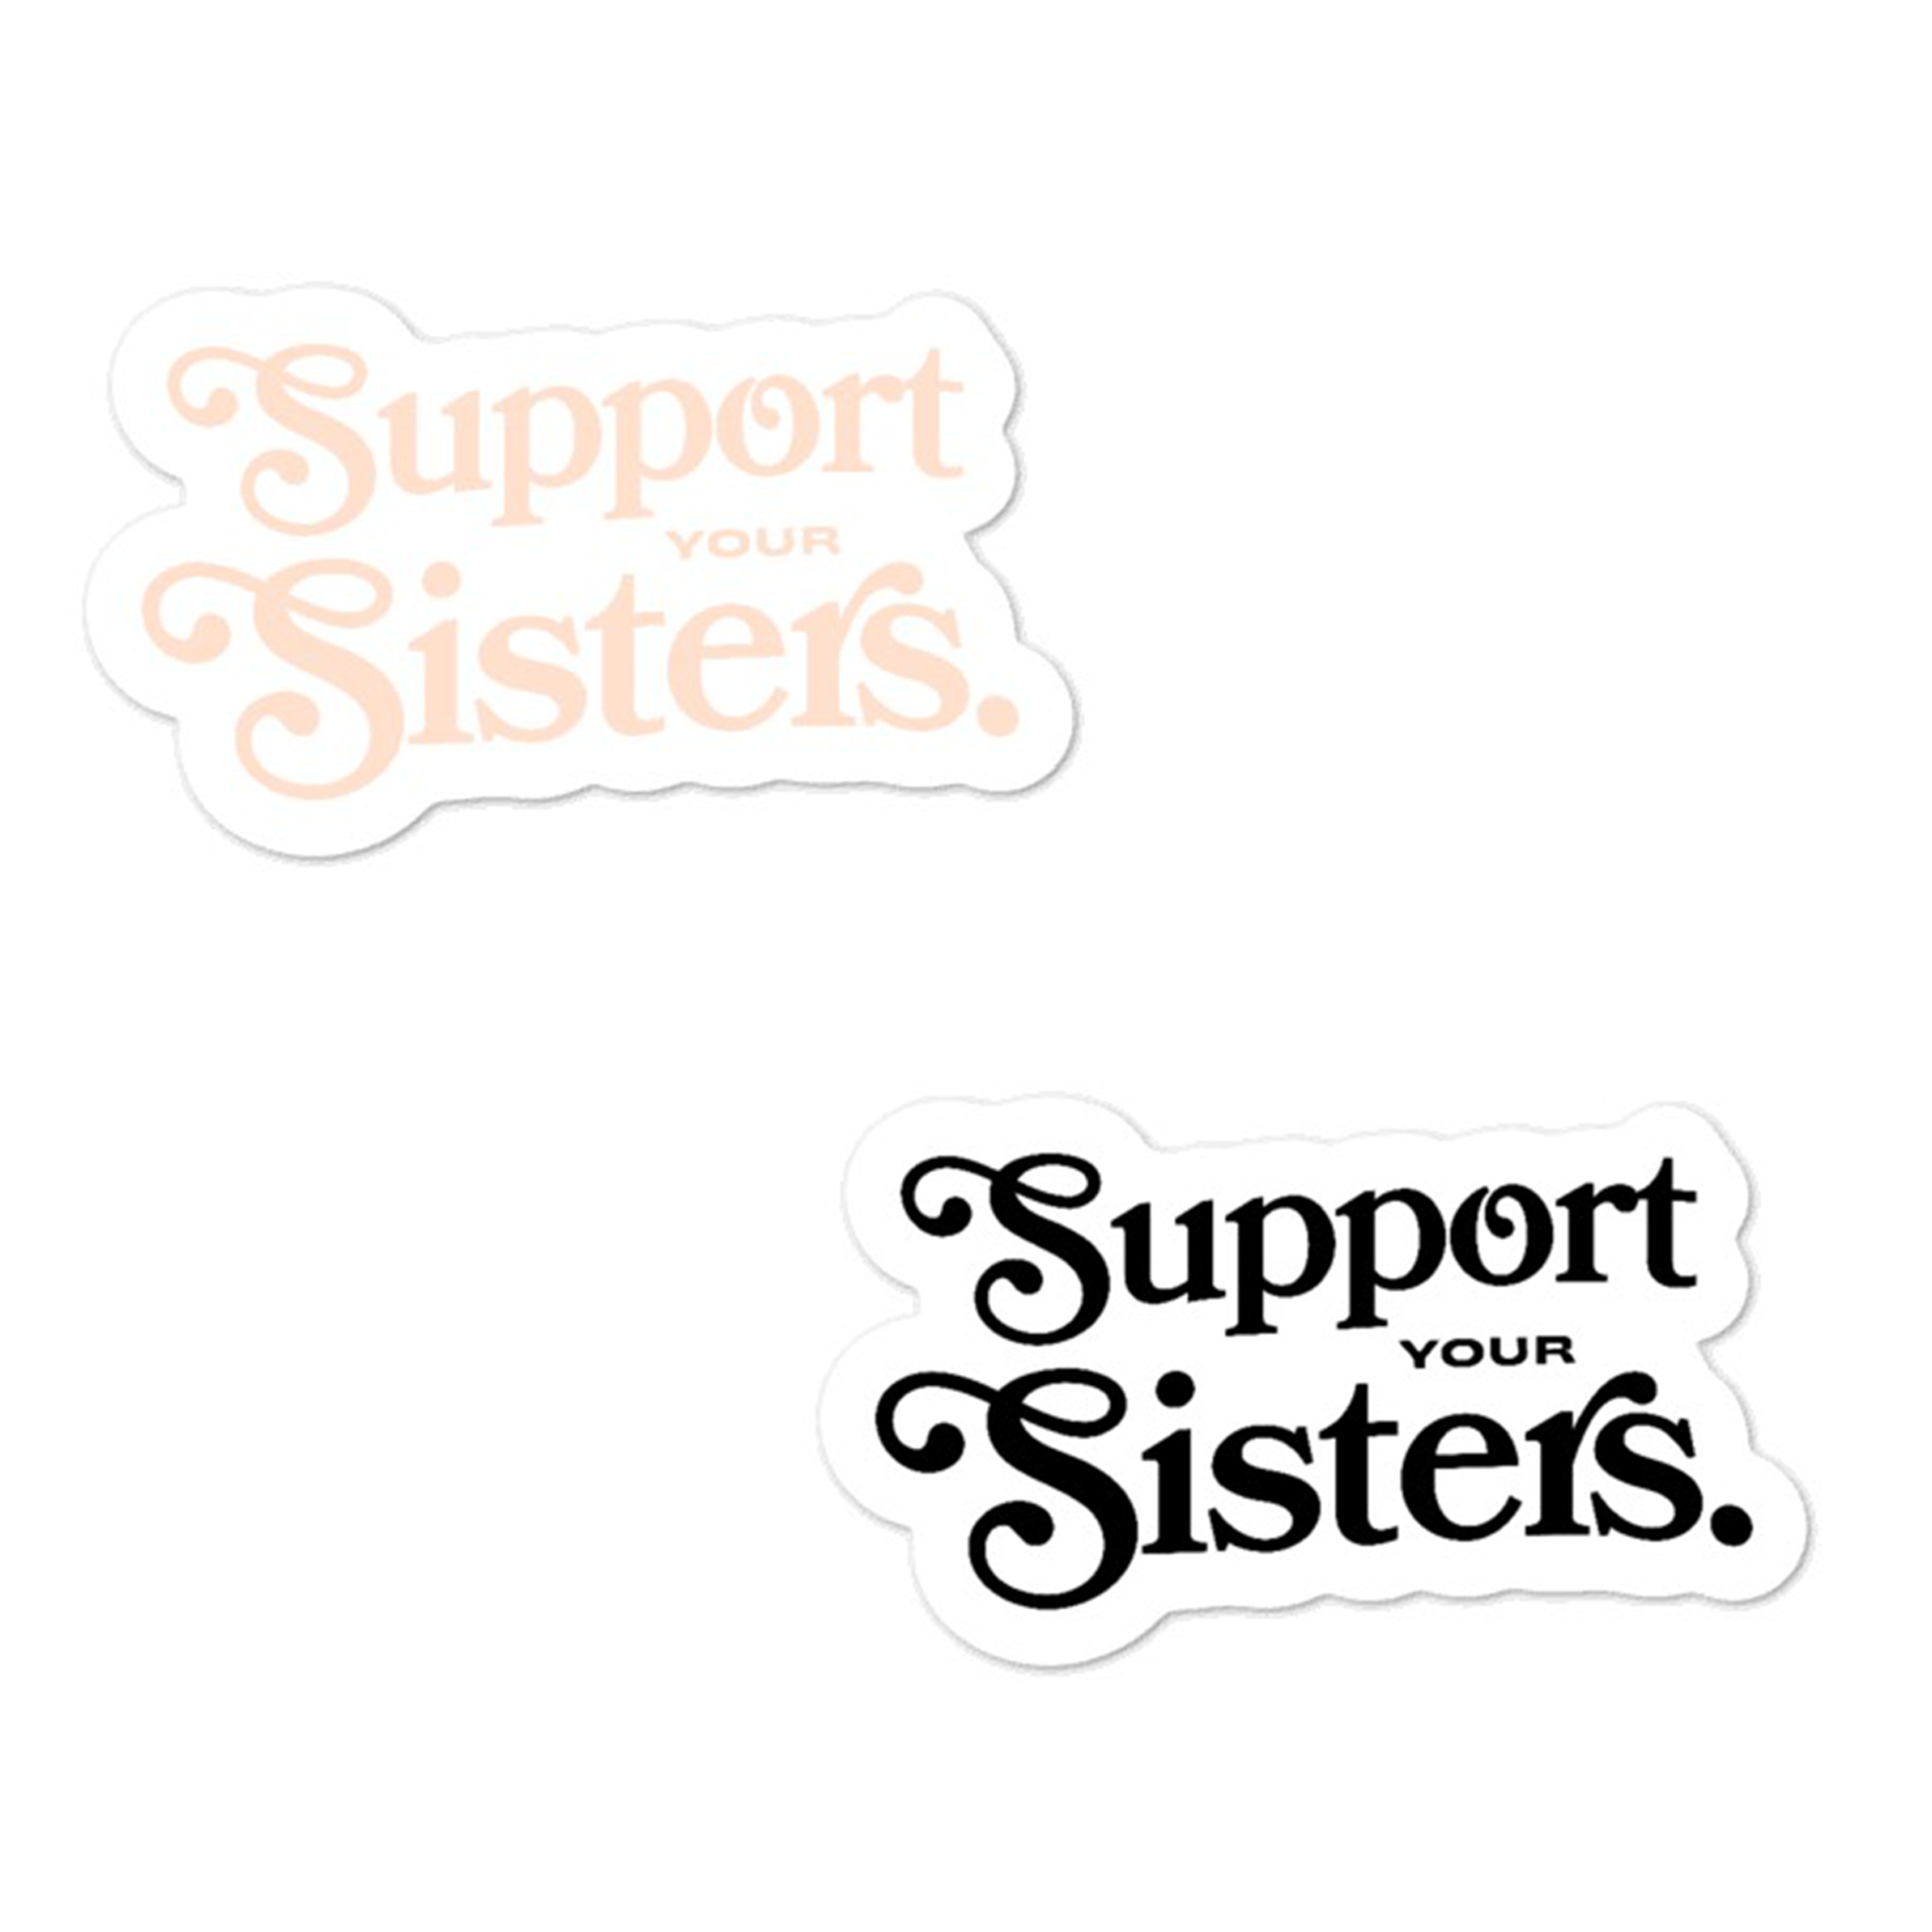 Support Your Sisters Sticker Pack